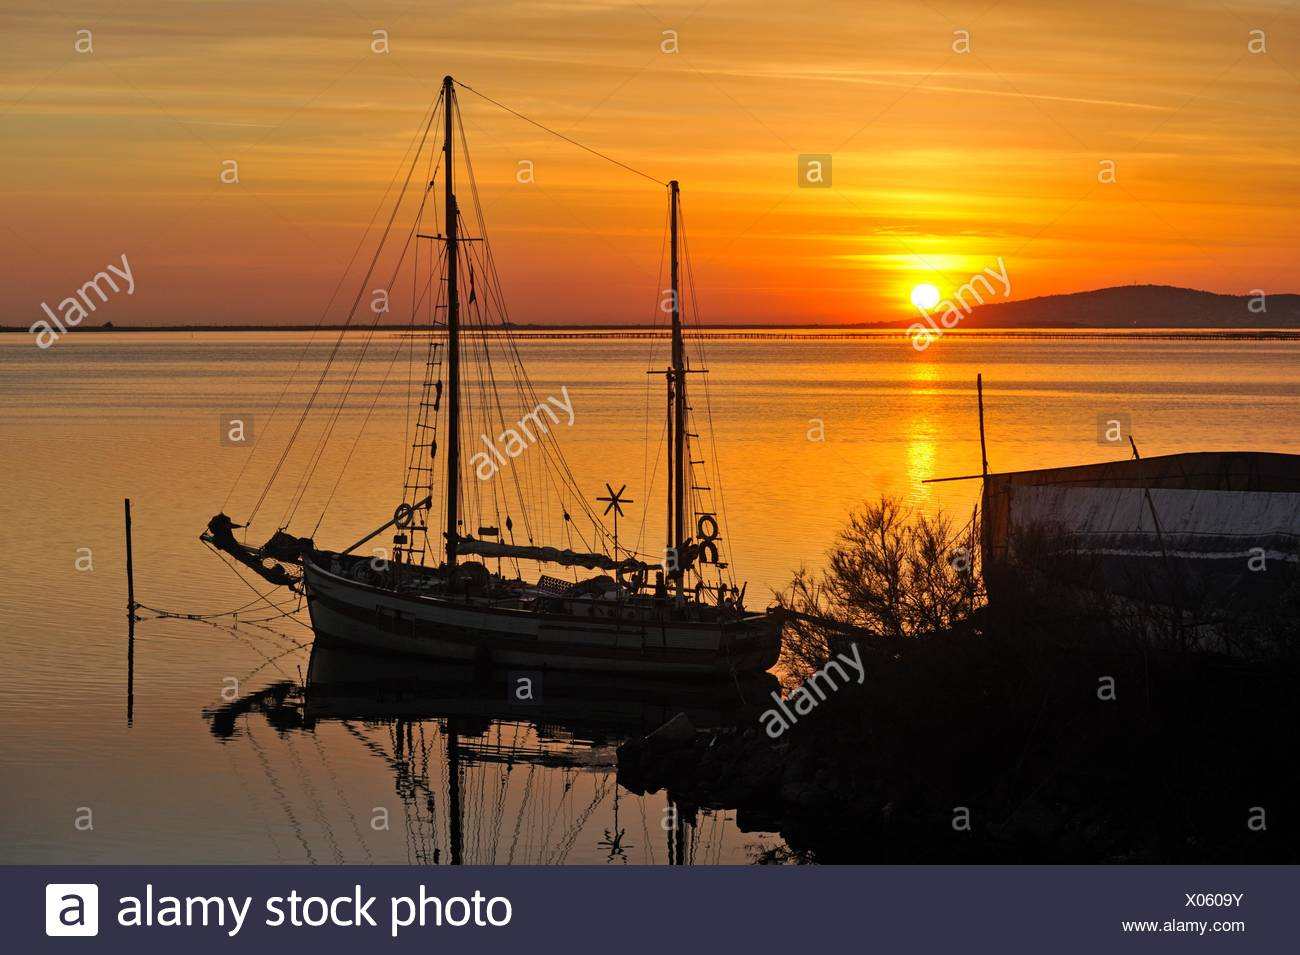 ketch sailing boat at anchor on Etang de Thau, Marseillan, Herault department, Languedoc-Roussillon region, France, Europe. - Stock Image